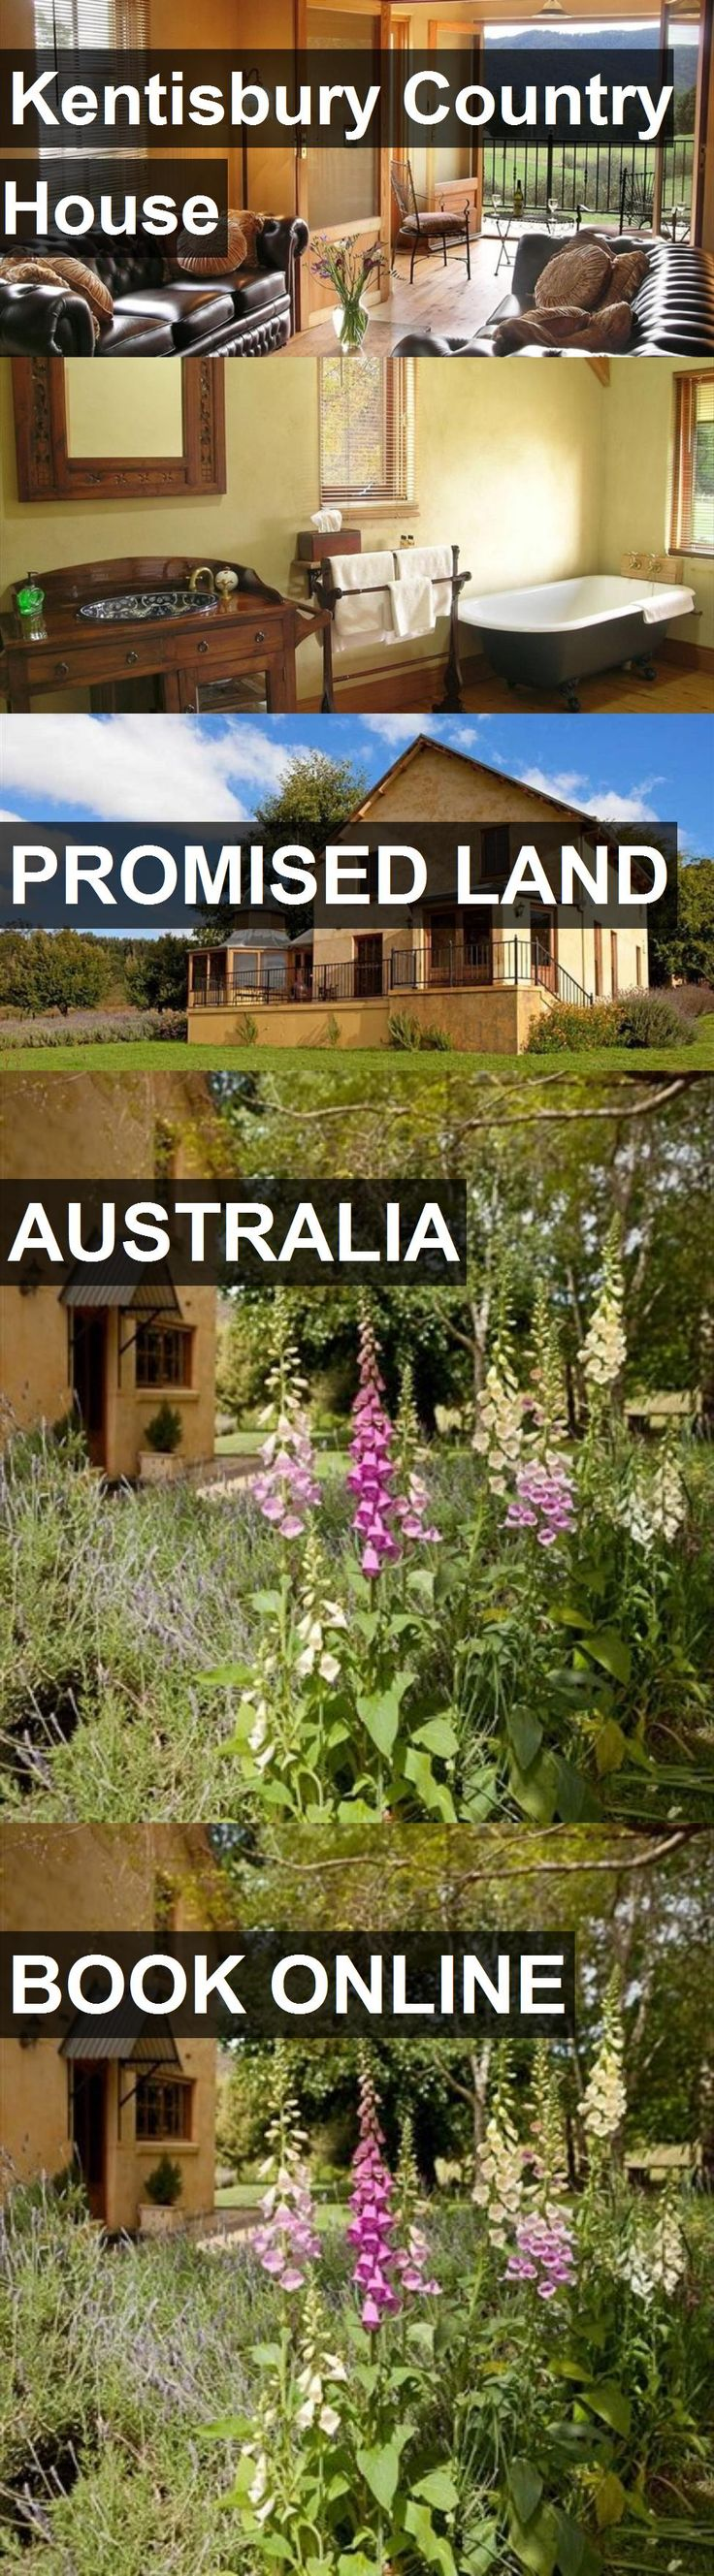 Hotel Kentisbury Country House in Promised Land, Australia. For more information, photos, reviews and best prices please follow the link. #Australia #PromisedLand #travel #vacation #hotel